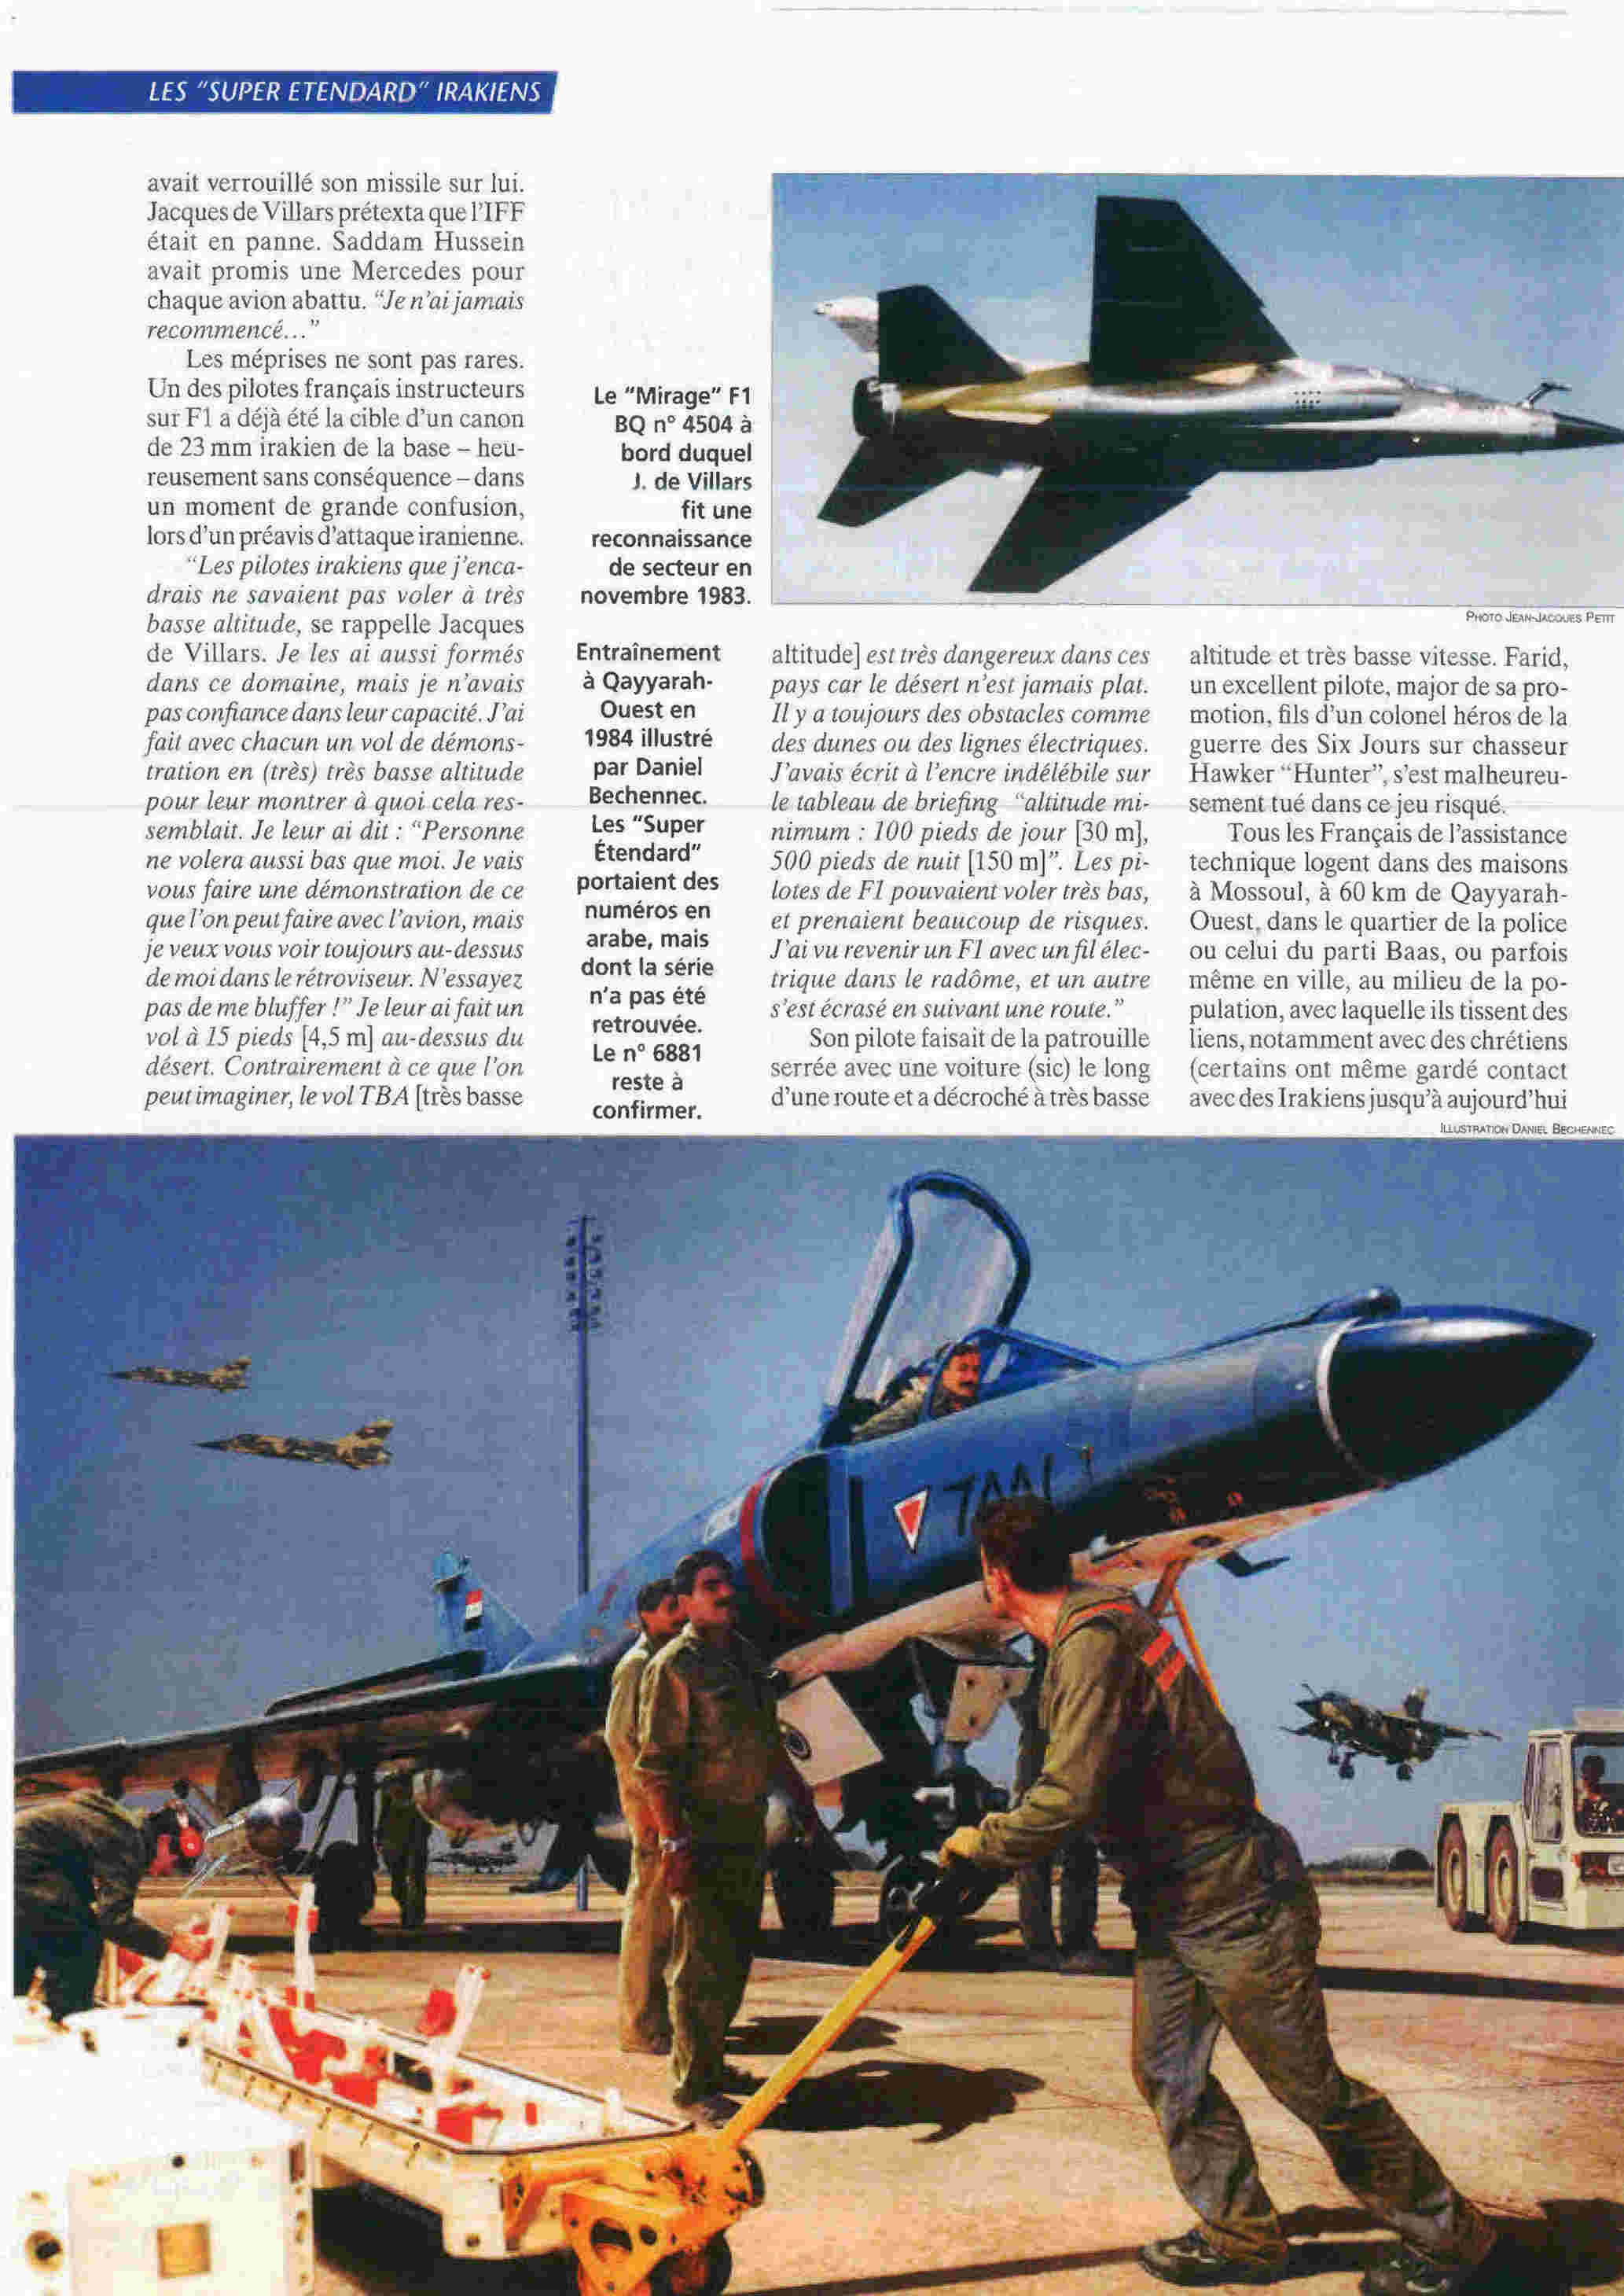 Guerre Iran-Irak - Page 3 S2310